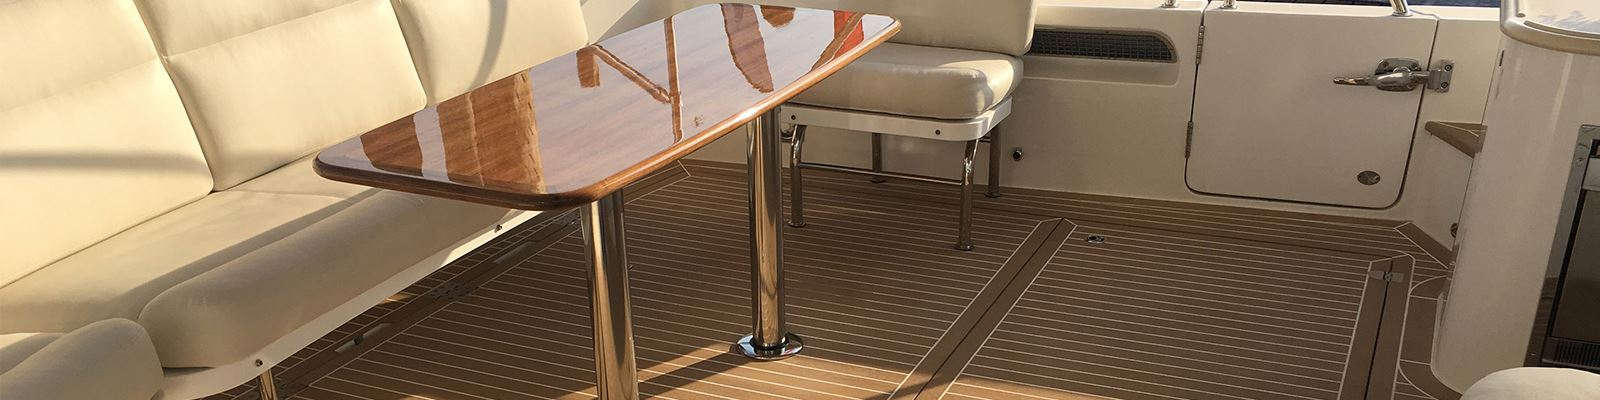 pontoon-store-pontoon-table-pedestals-f16-0005a